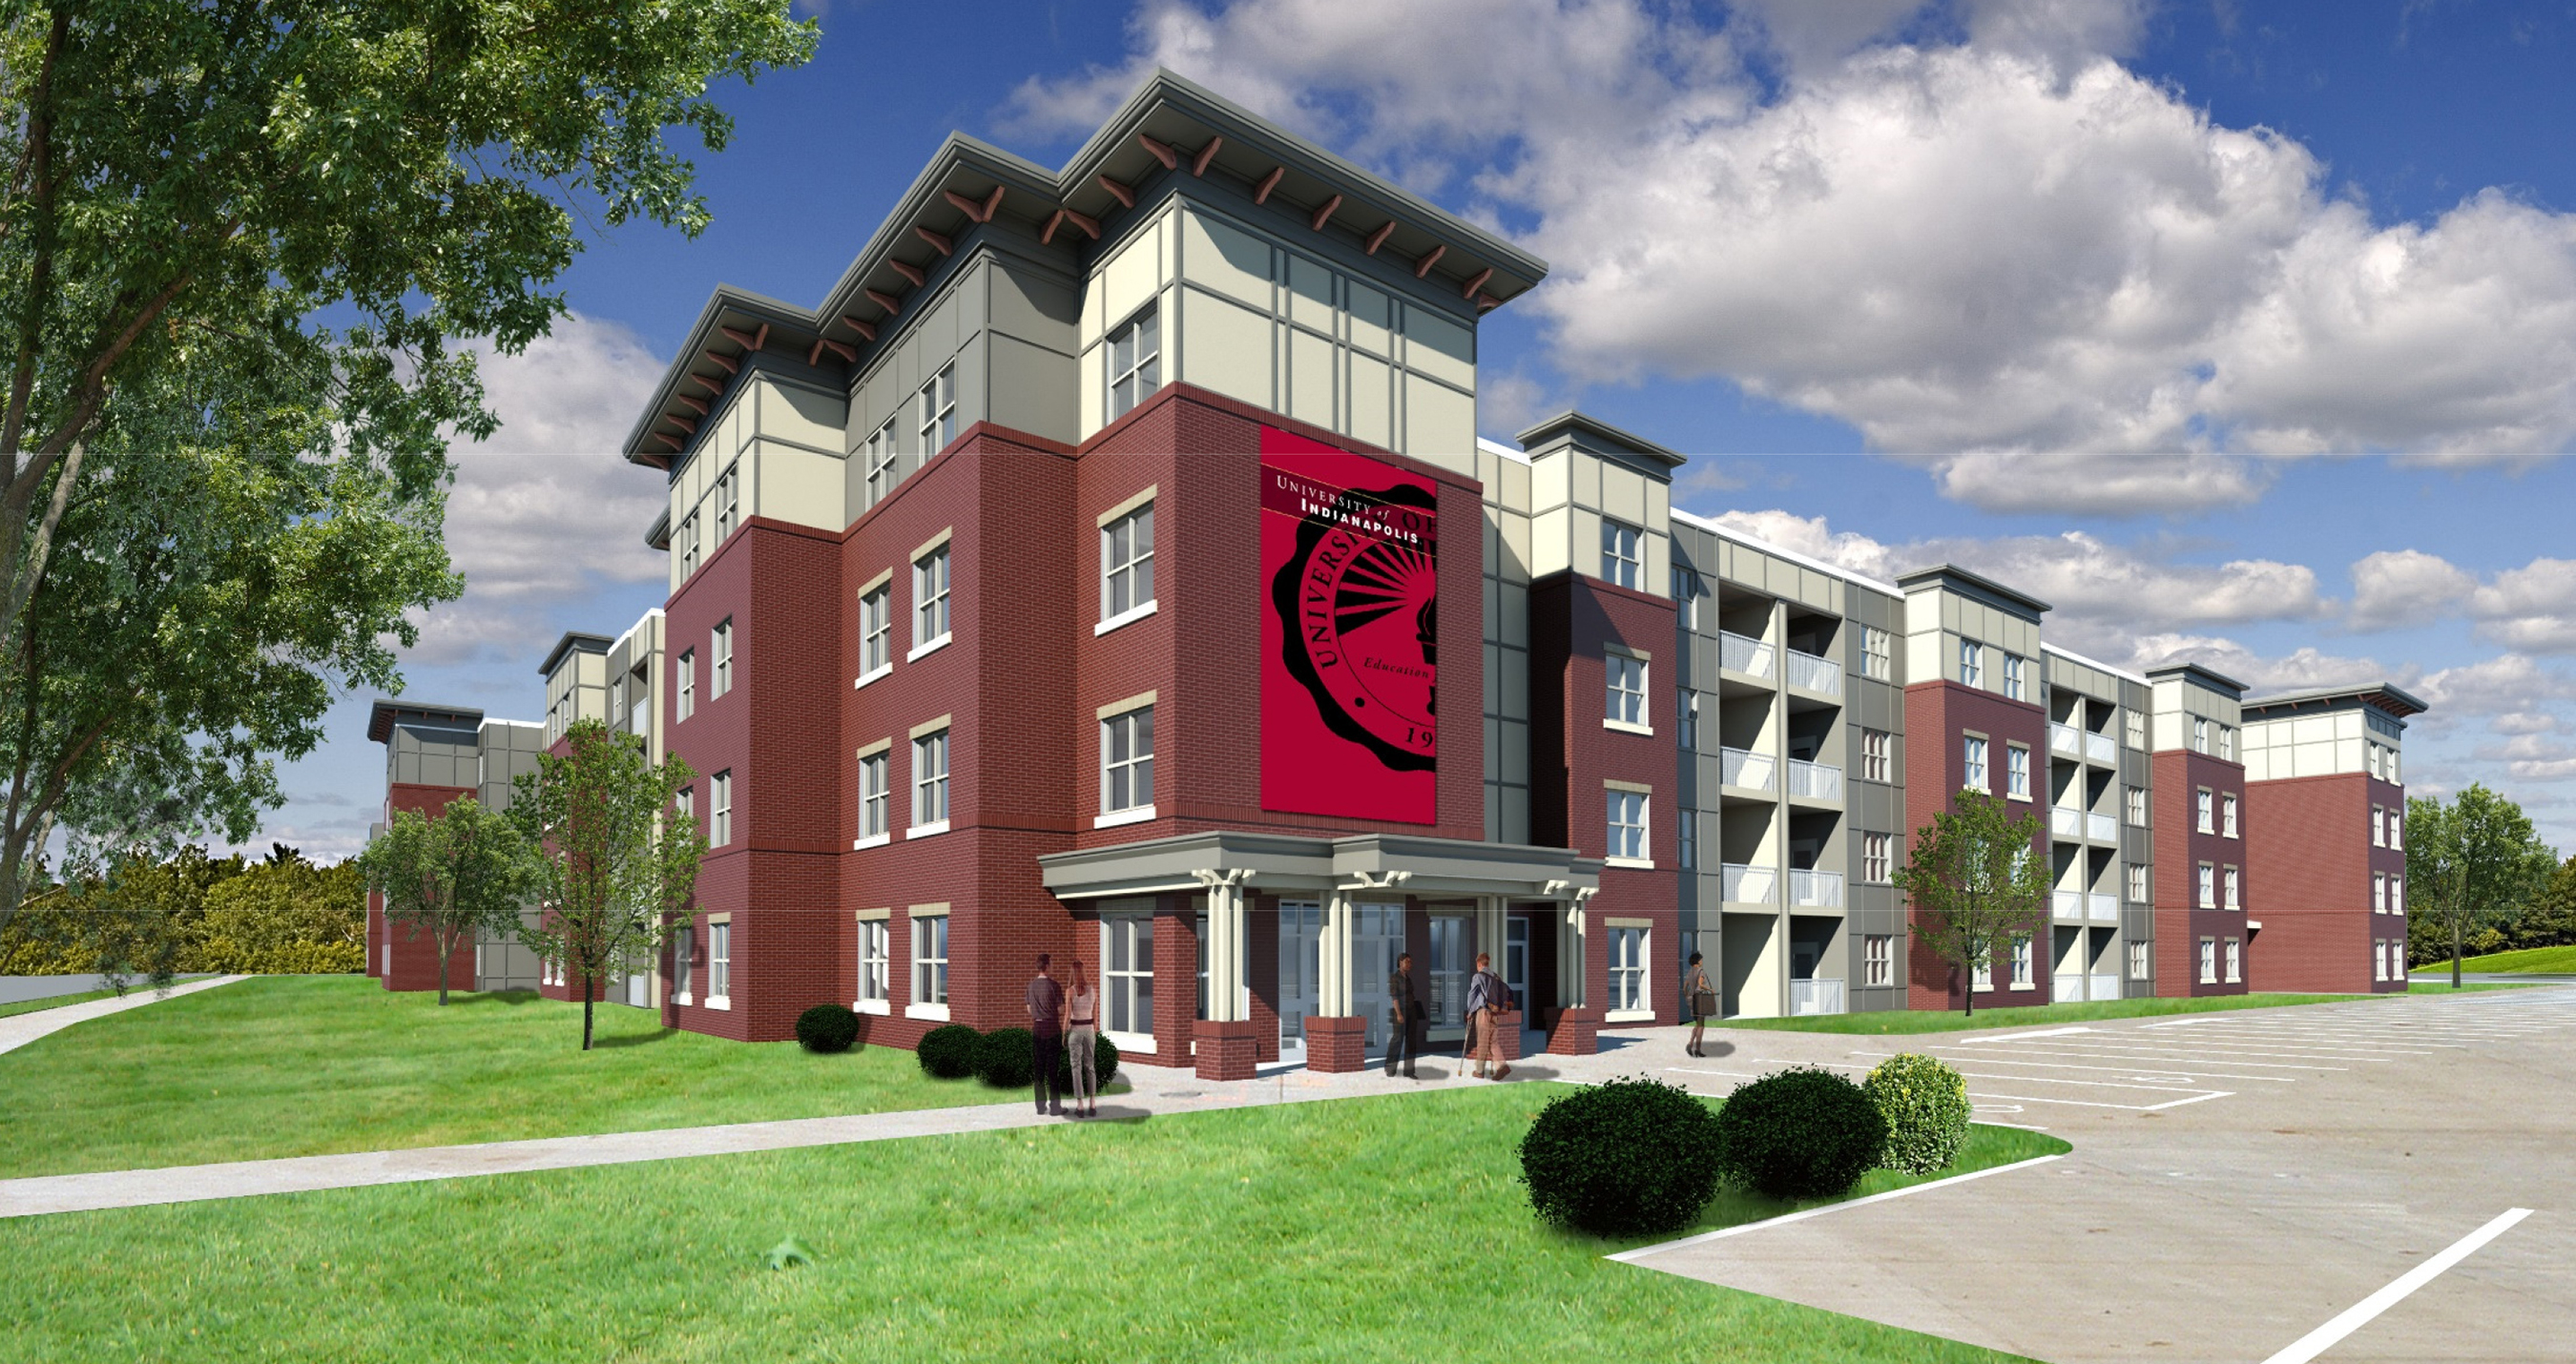 Work to begin on new student apartments - UIndy 360